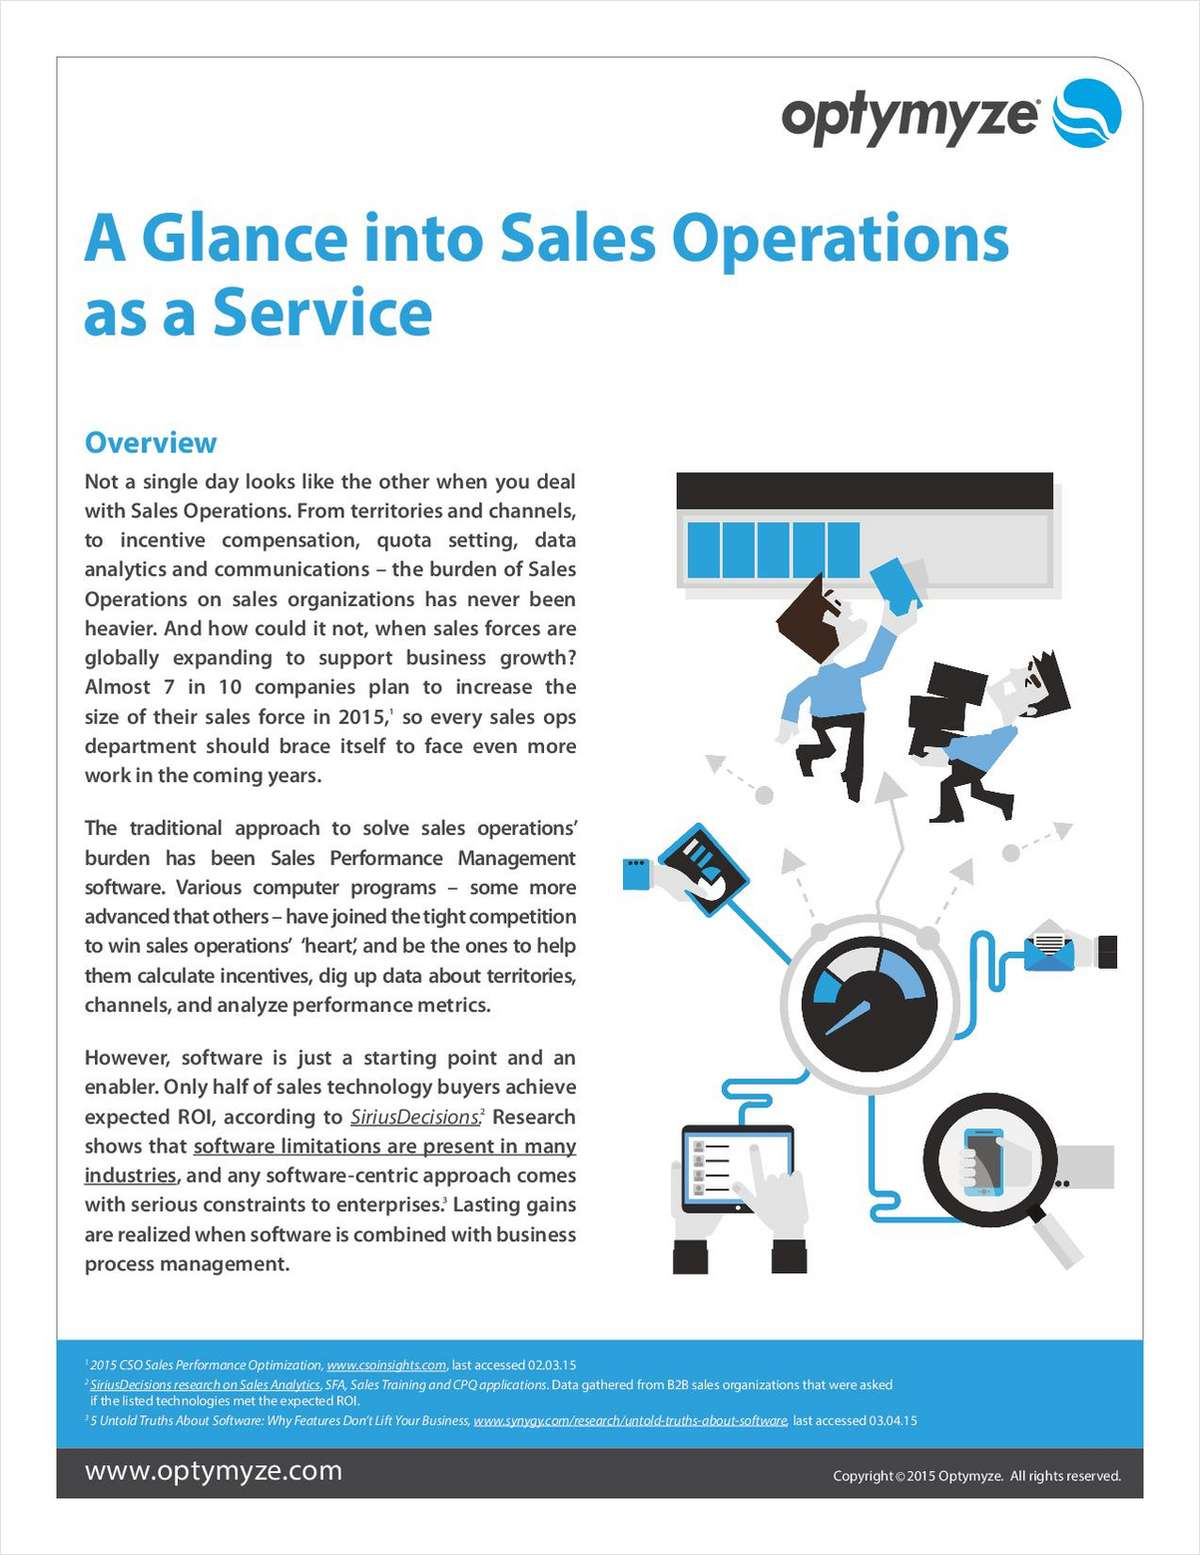 A Glance into Sales Operations as a Service